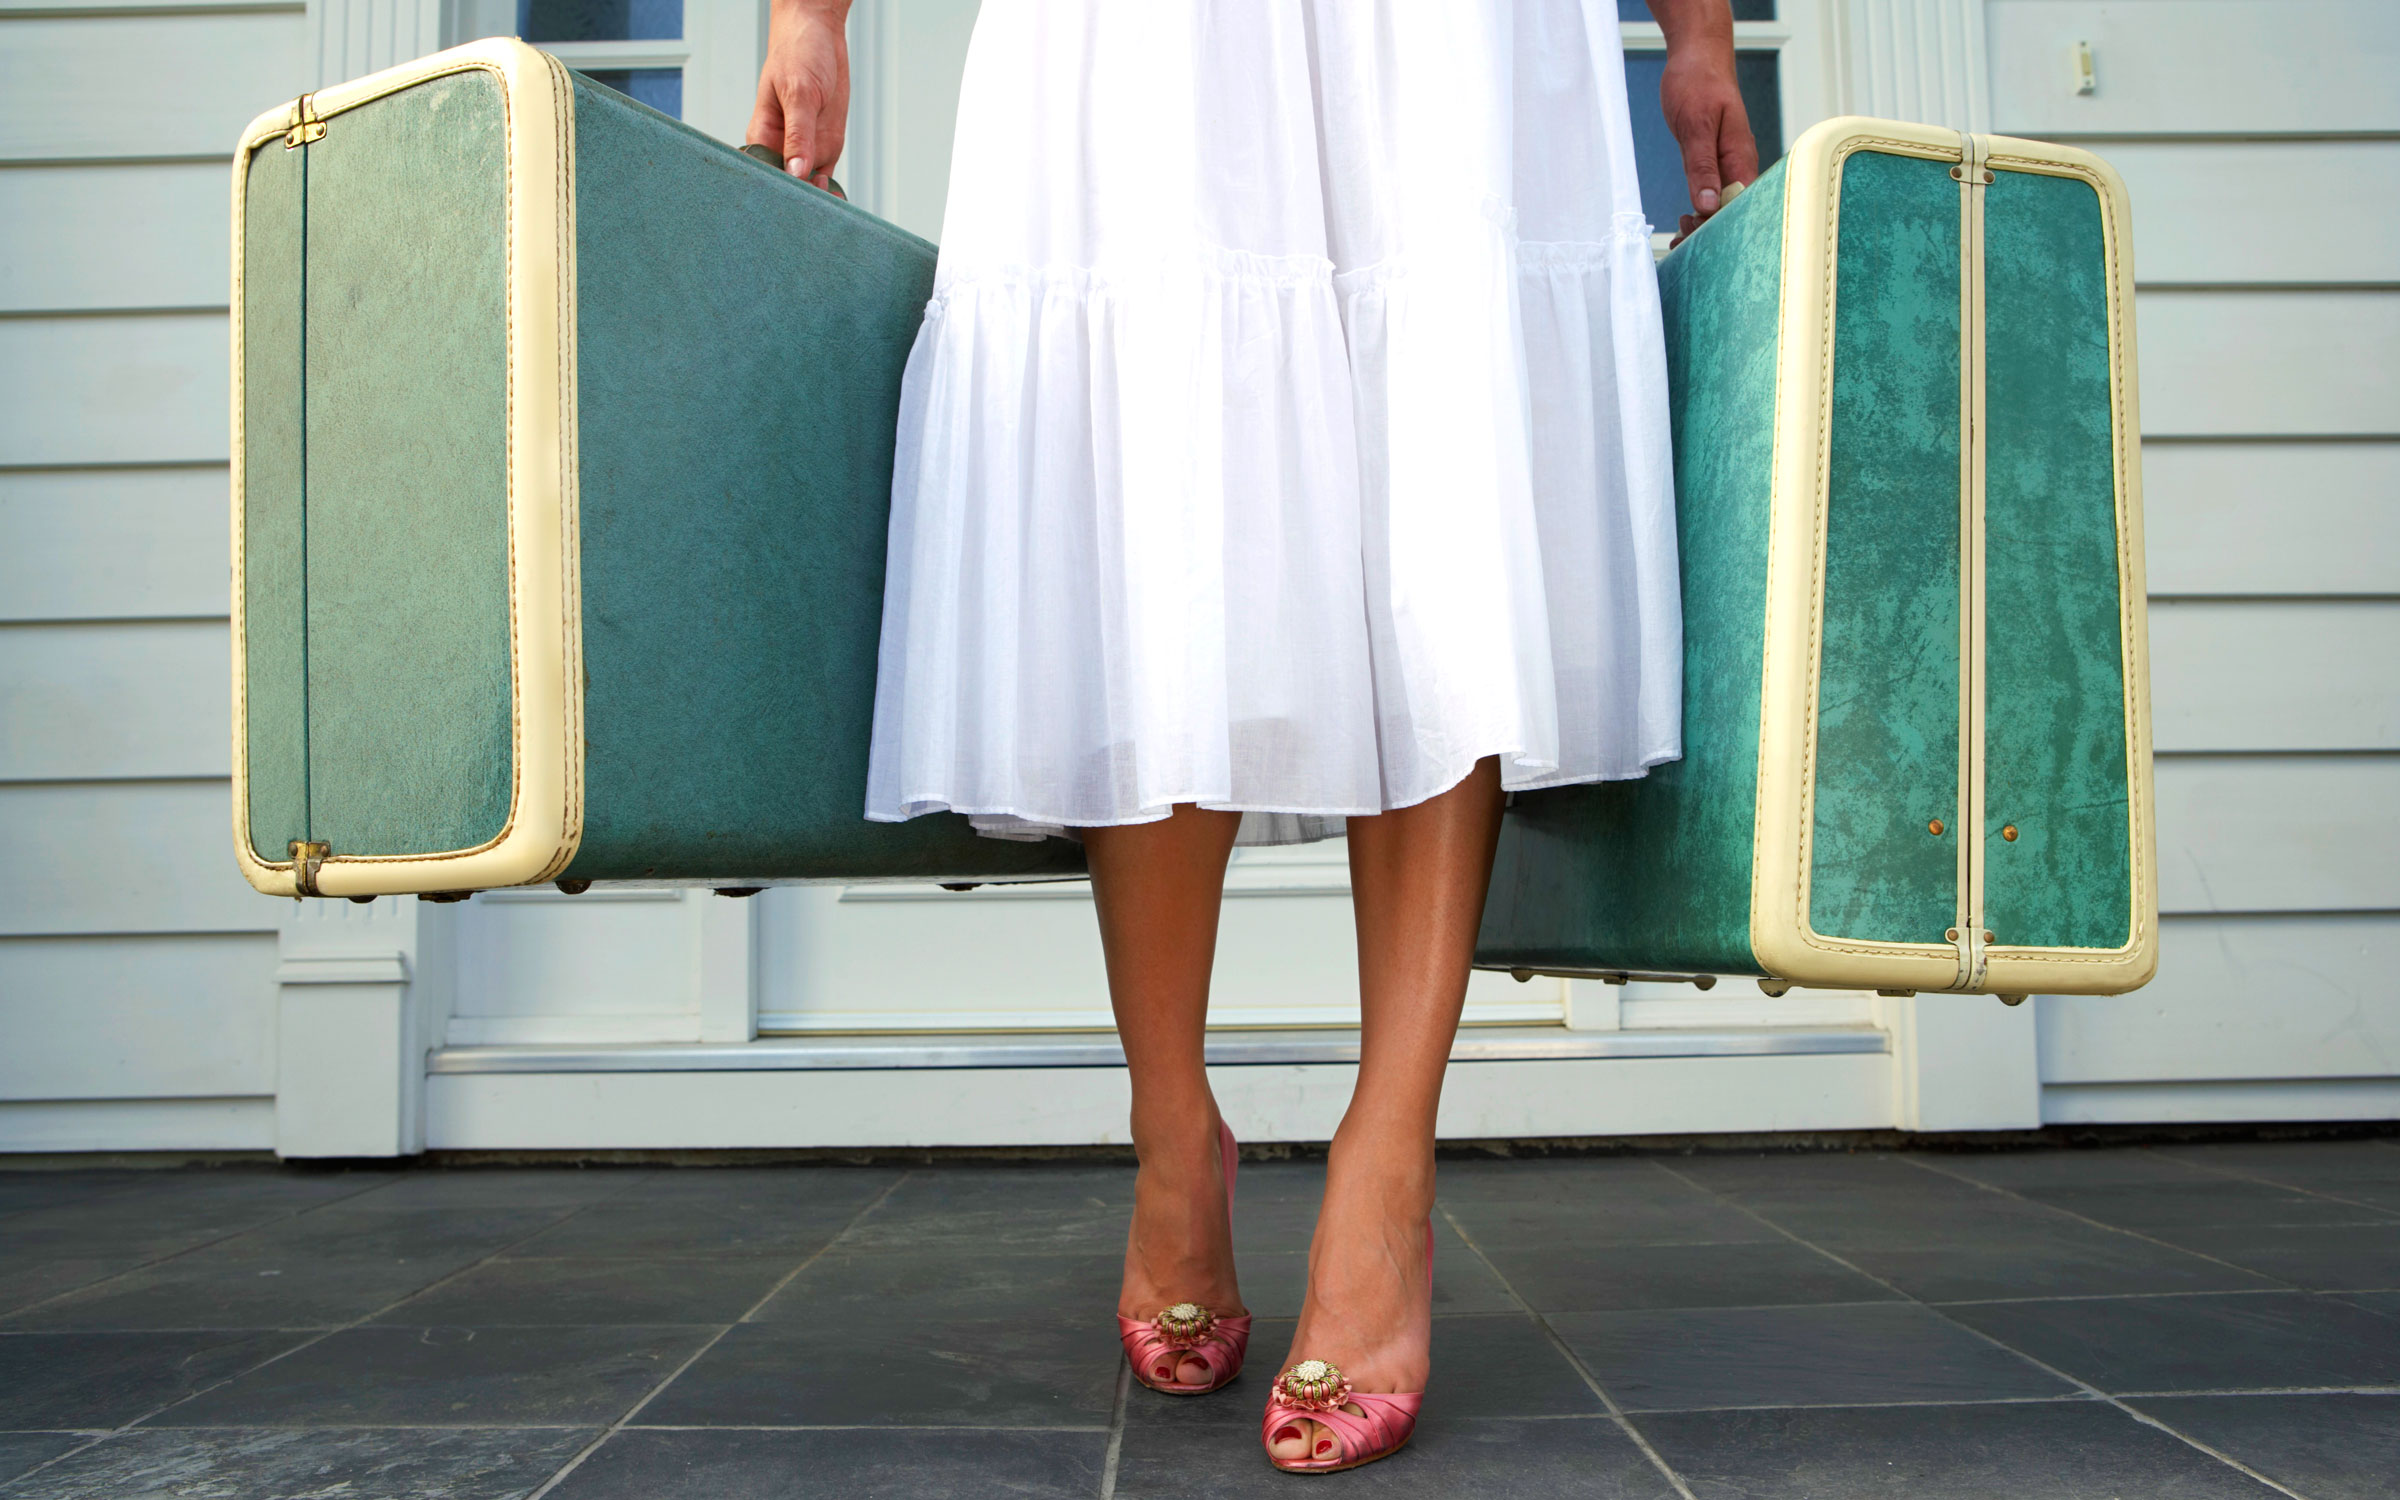 An easy hack for packing your dressy clothes